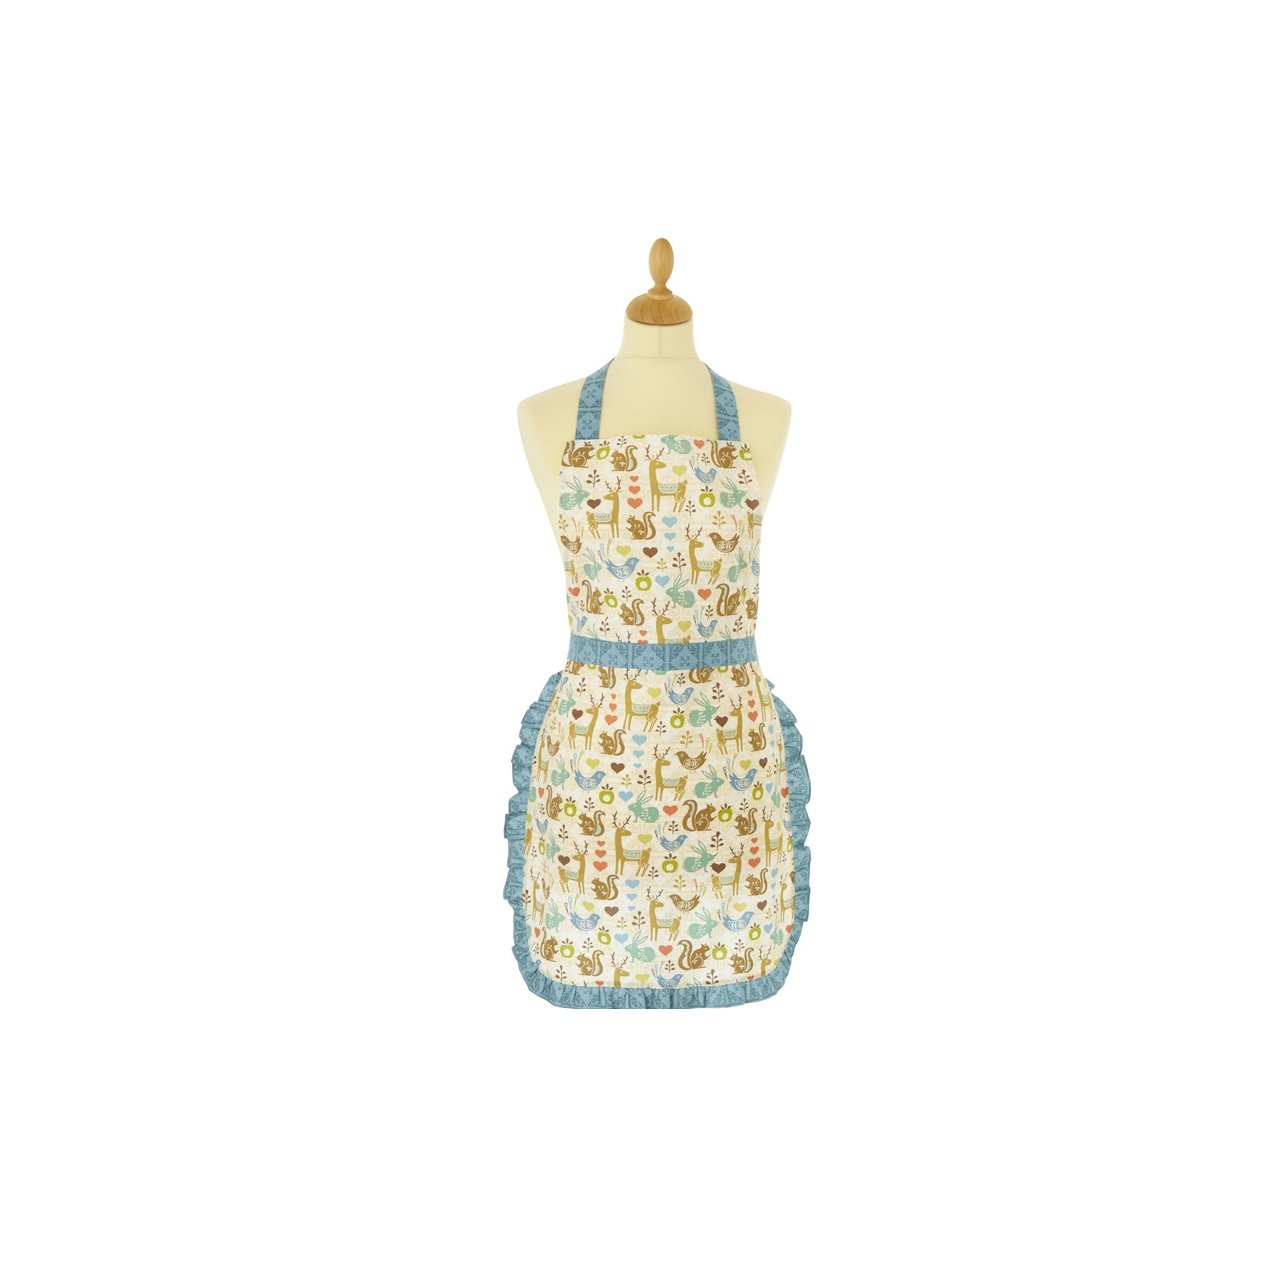 Ulster Weavers Enchanted Wood Styled Cotton Apron